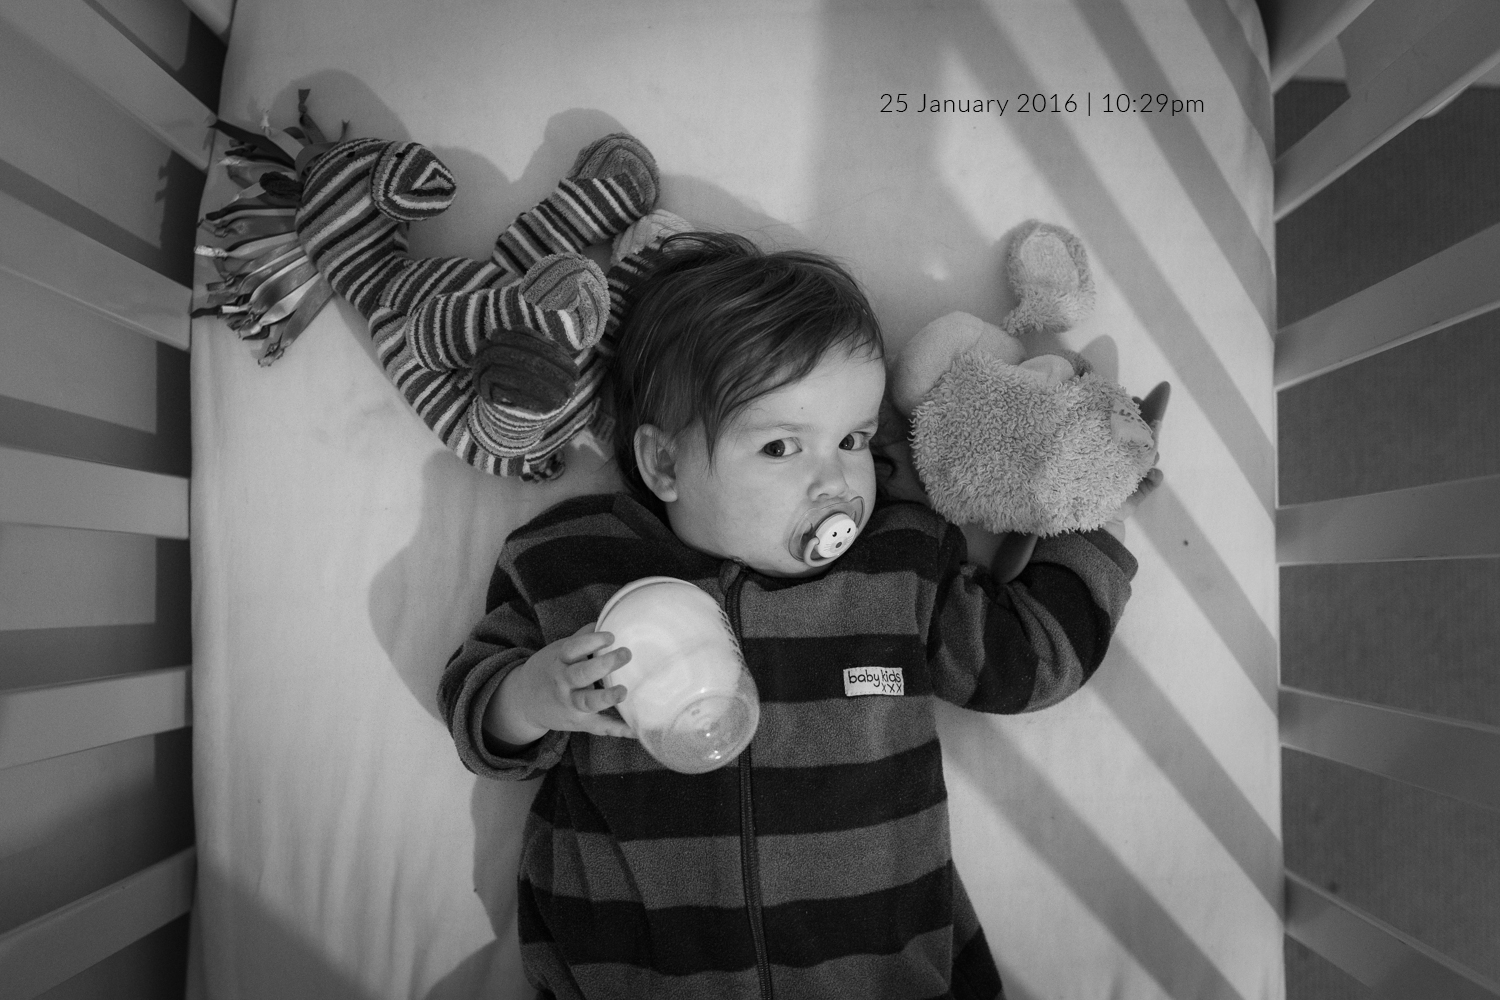 sleepy-baby-child-photography-photo-a-day-project-day-25.jpg